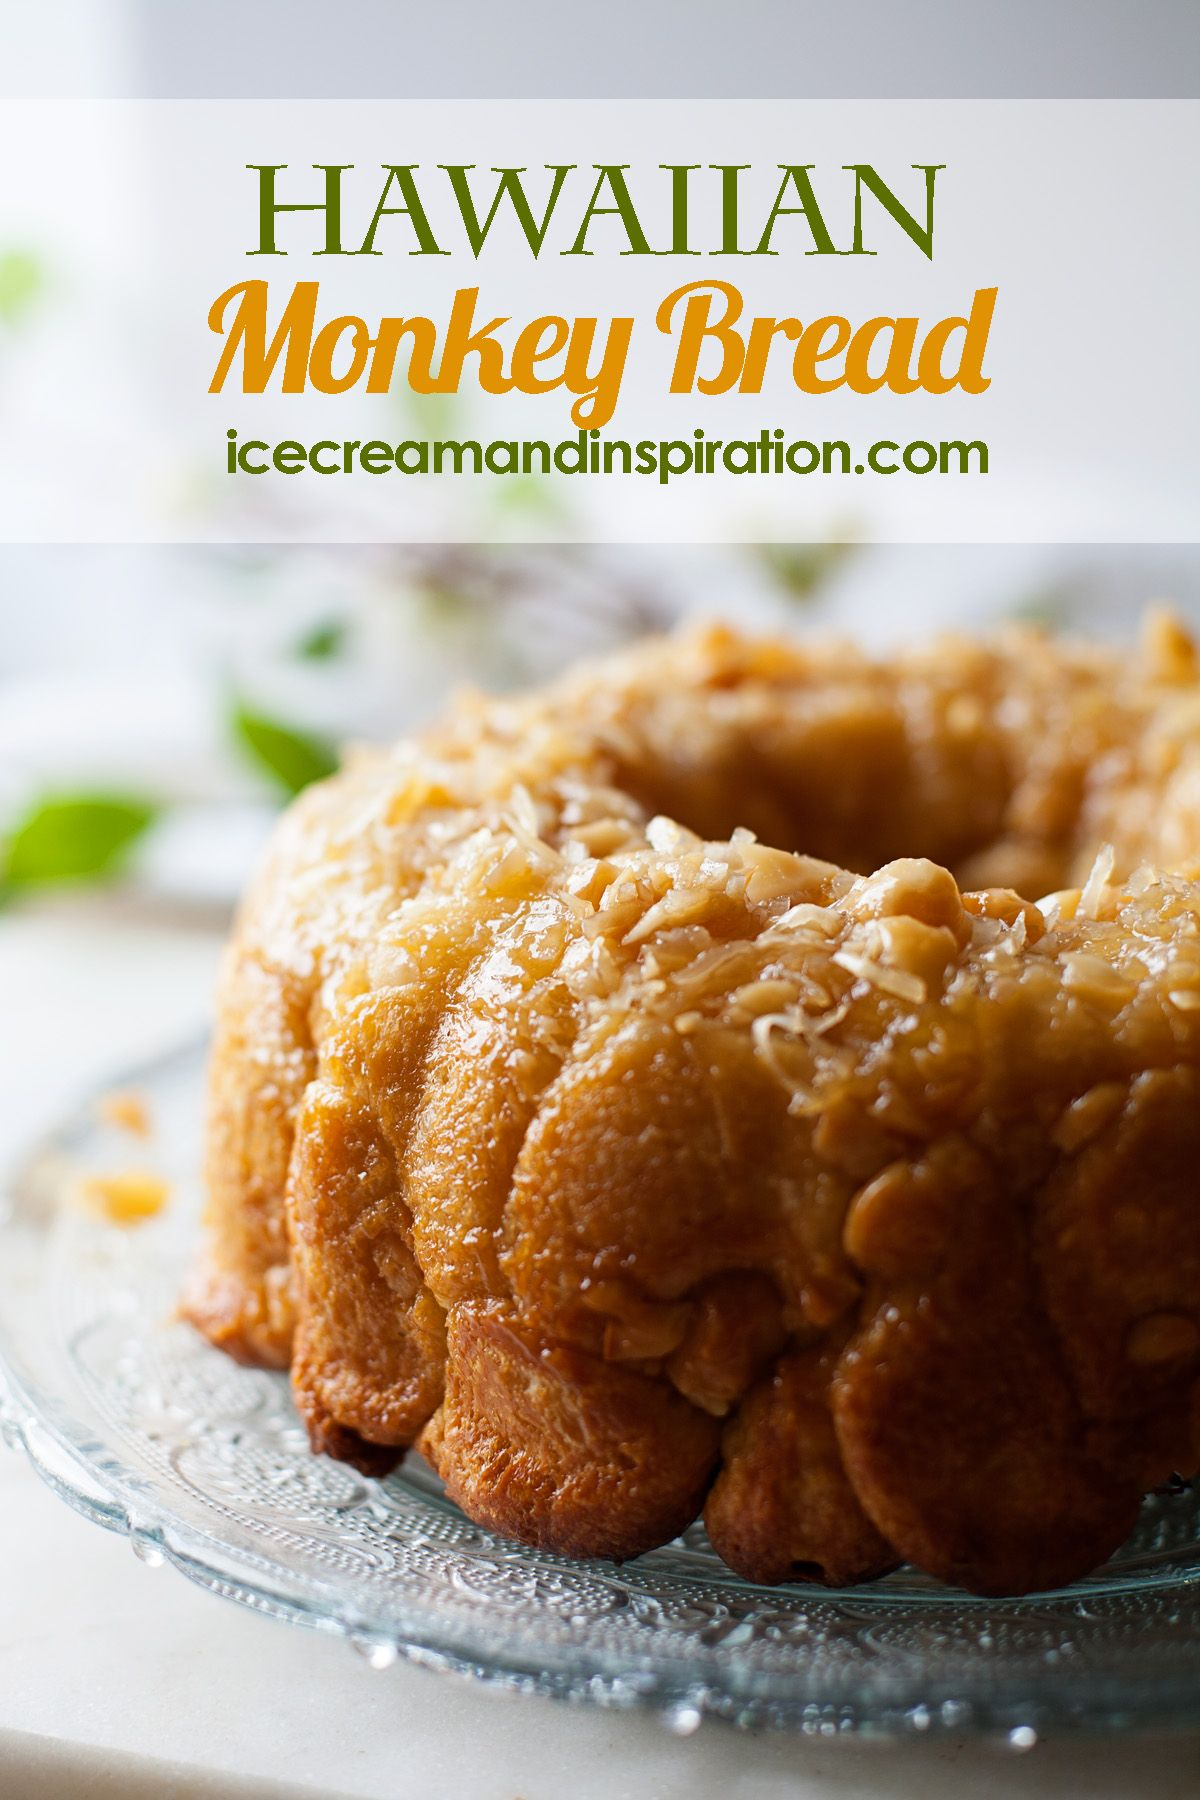 Make this Hawaiian Monkey Bread full of pineapple coconut and macadamia nuts for a